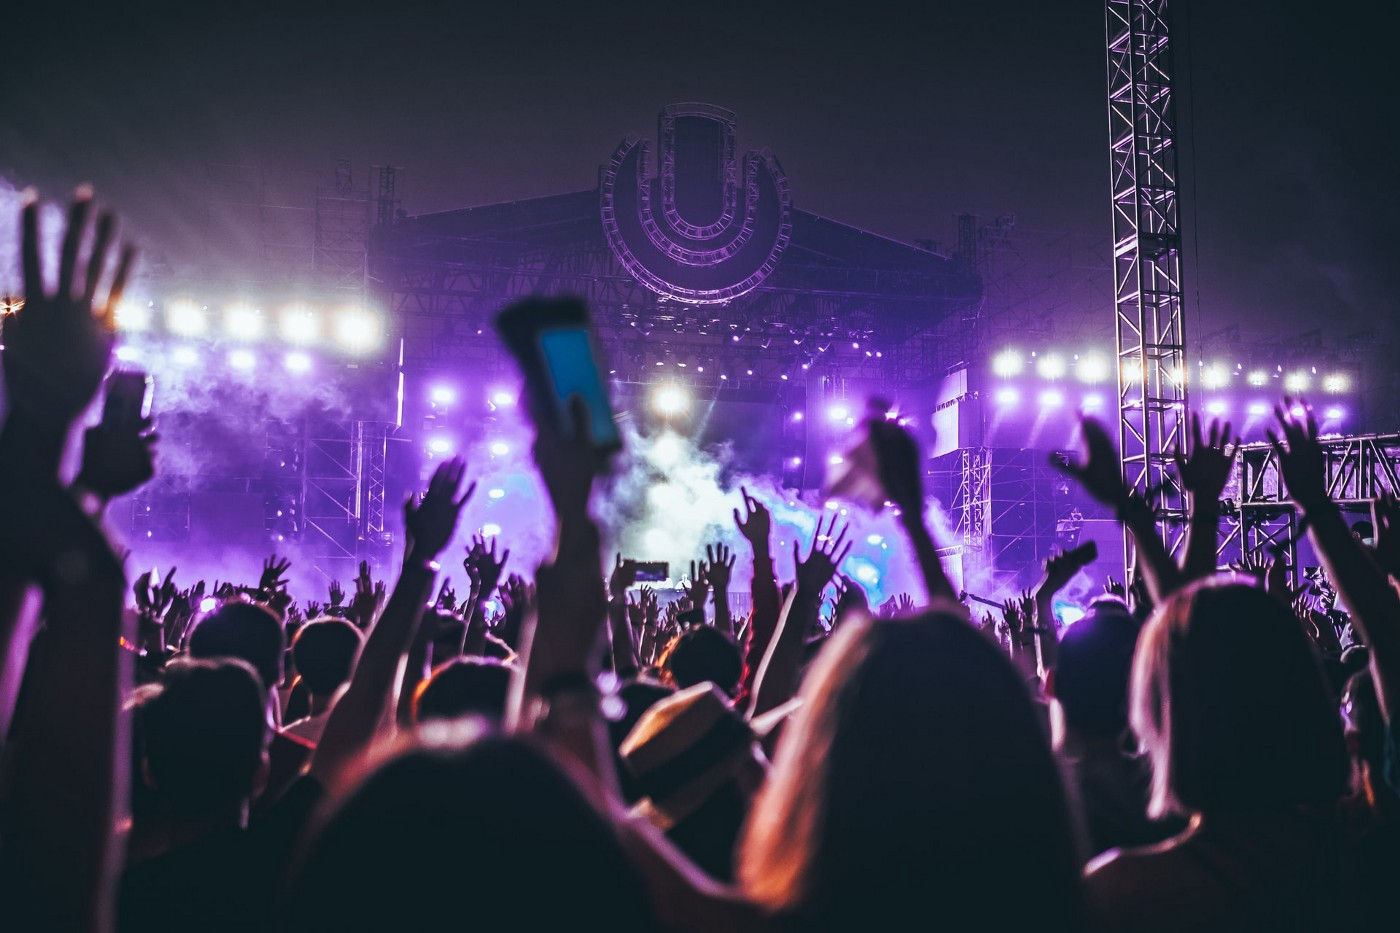 People at a concert